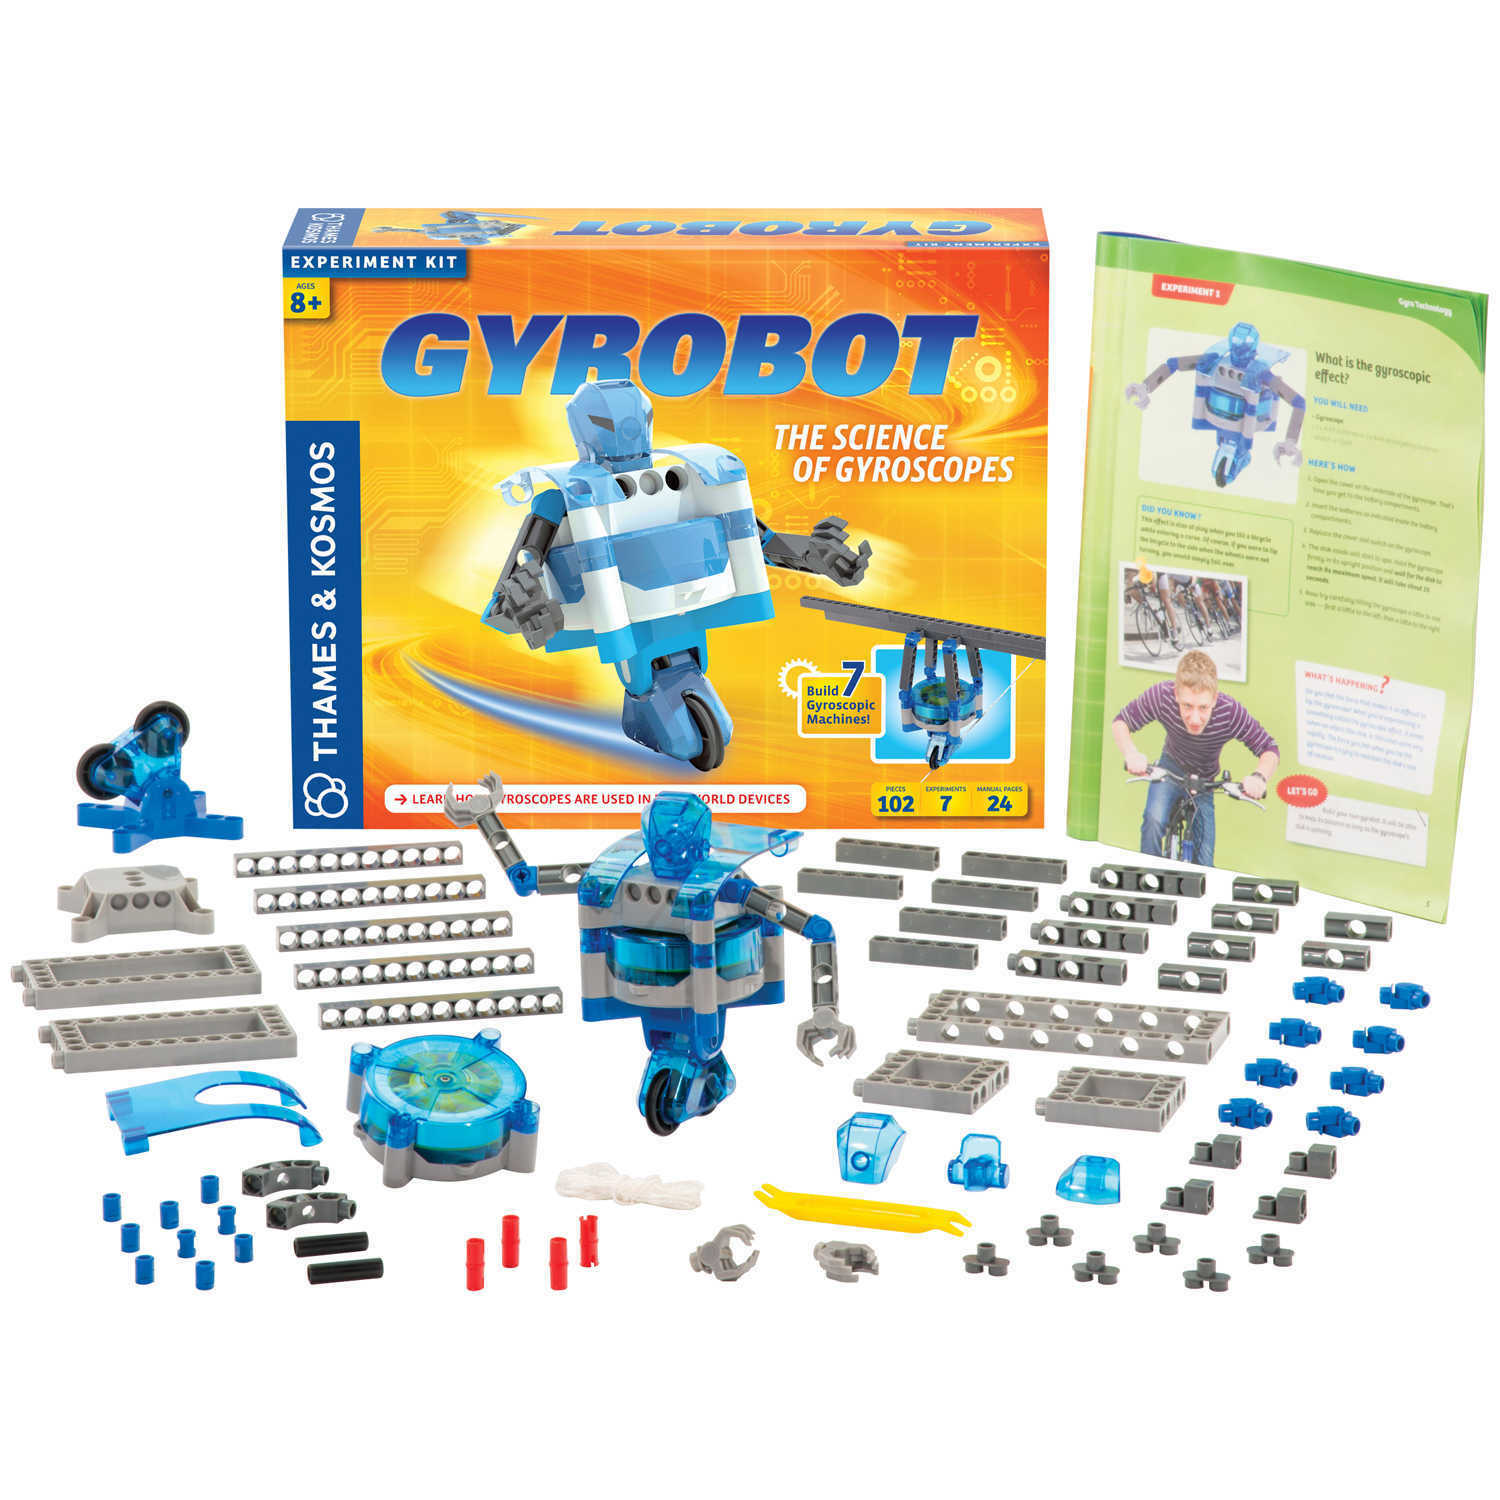 Thames Kosmos Gyrobot Science Of Gyroscopes 7 Experiments Robot Home Products Kits Snap Circuits Green Stock Photo